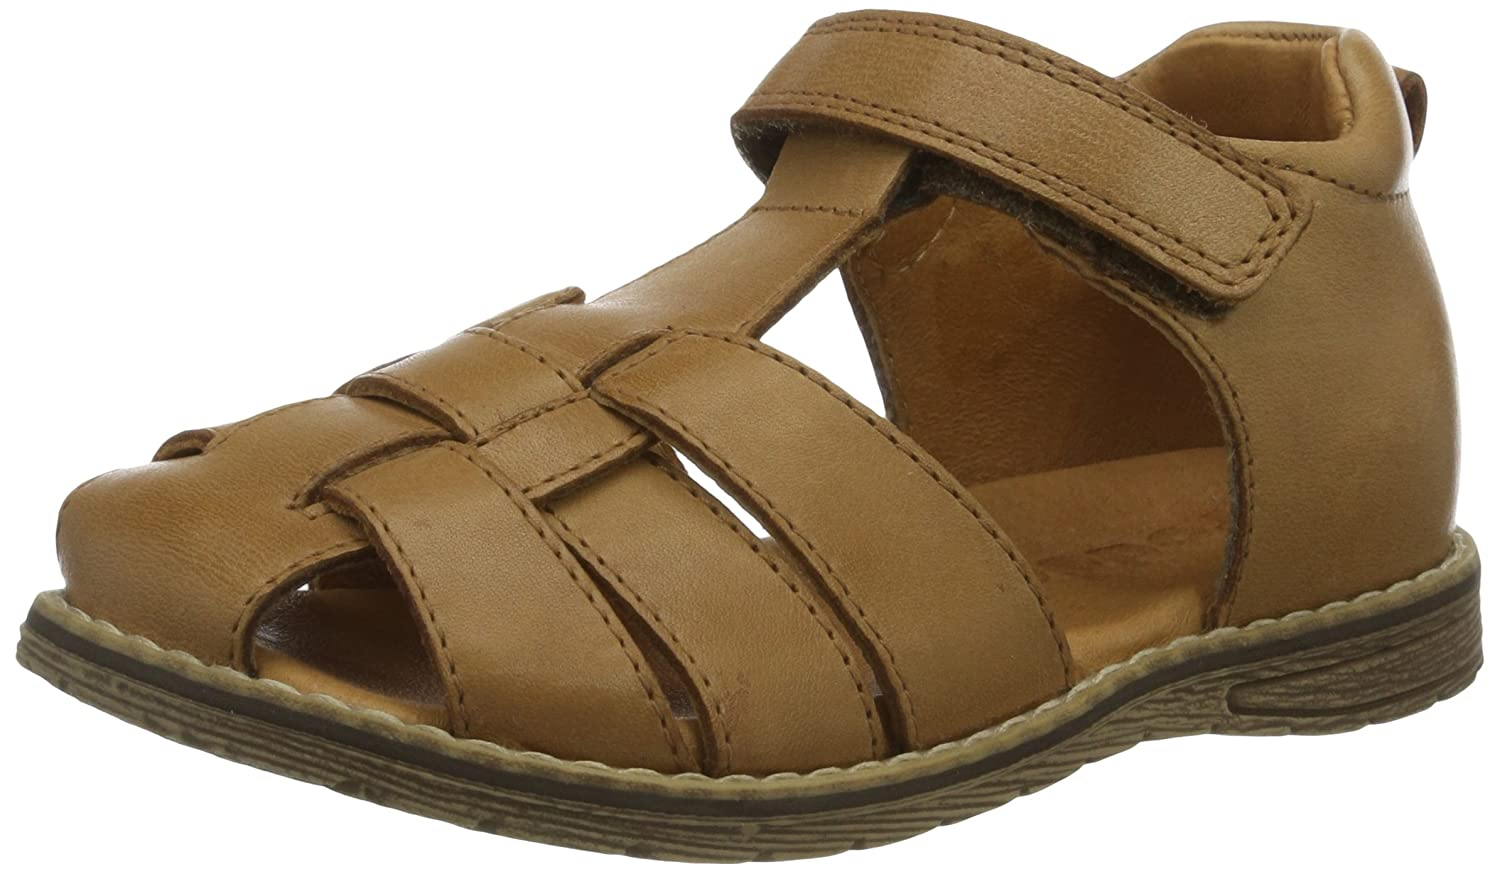 Froddo Boys Brown Sandal G3150083-3 Closed Toe